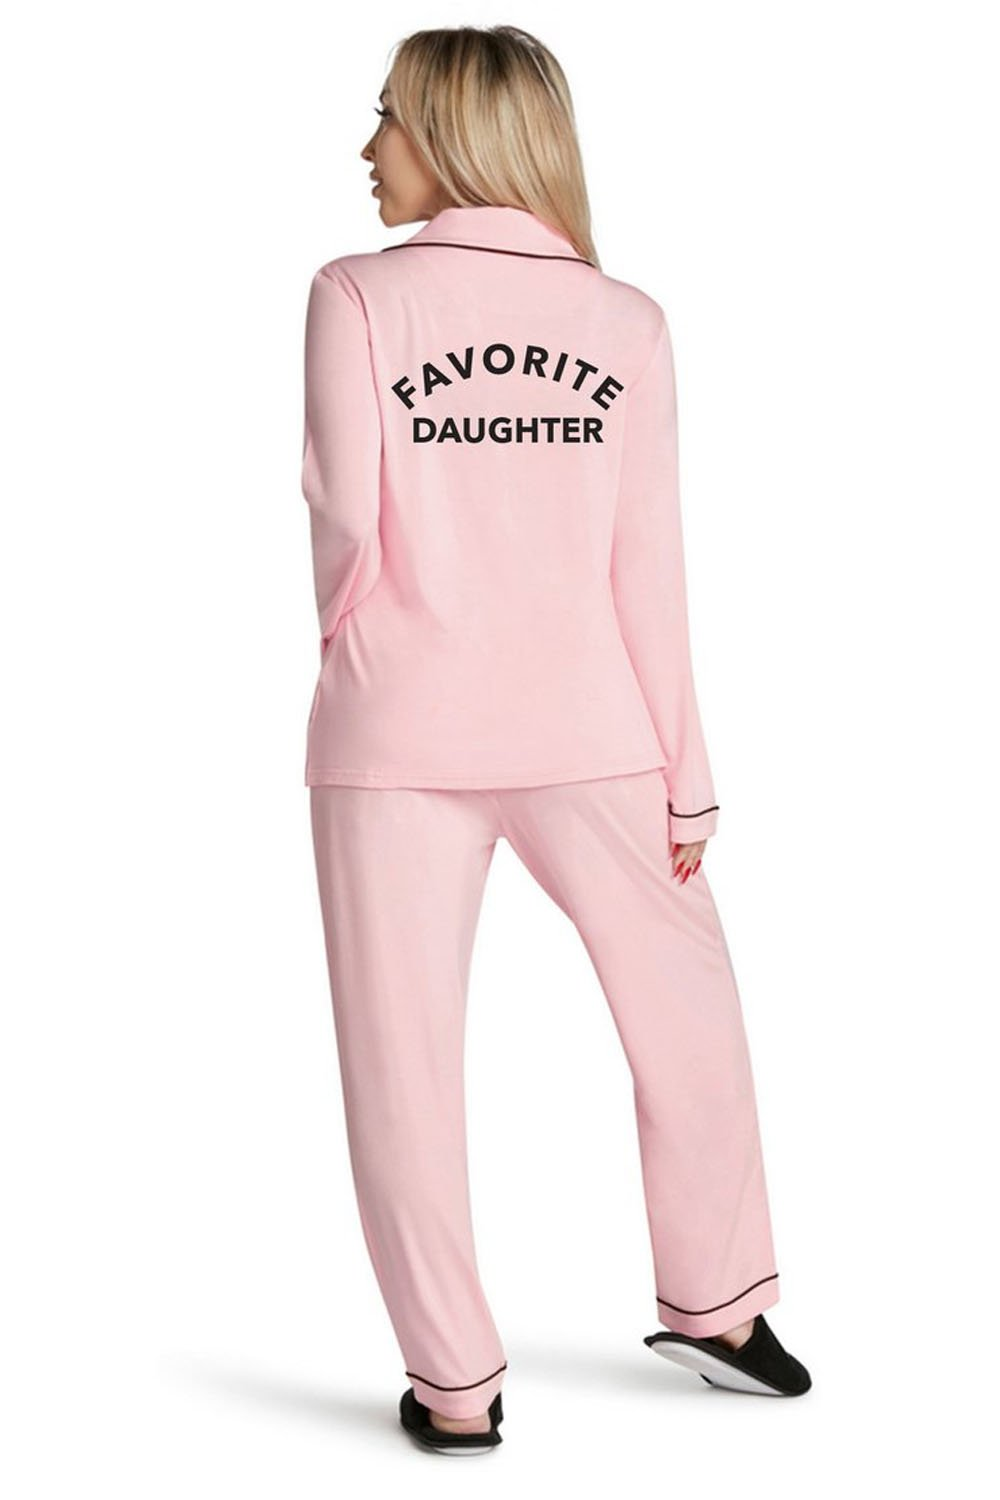 Favorite Daughter Pajama Set